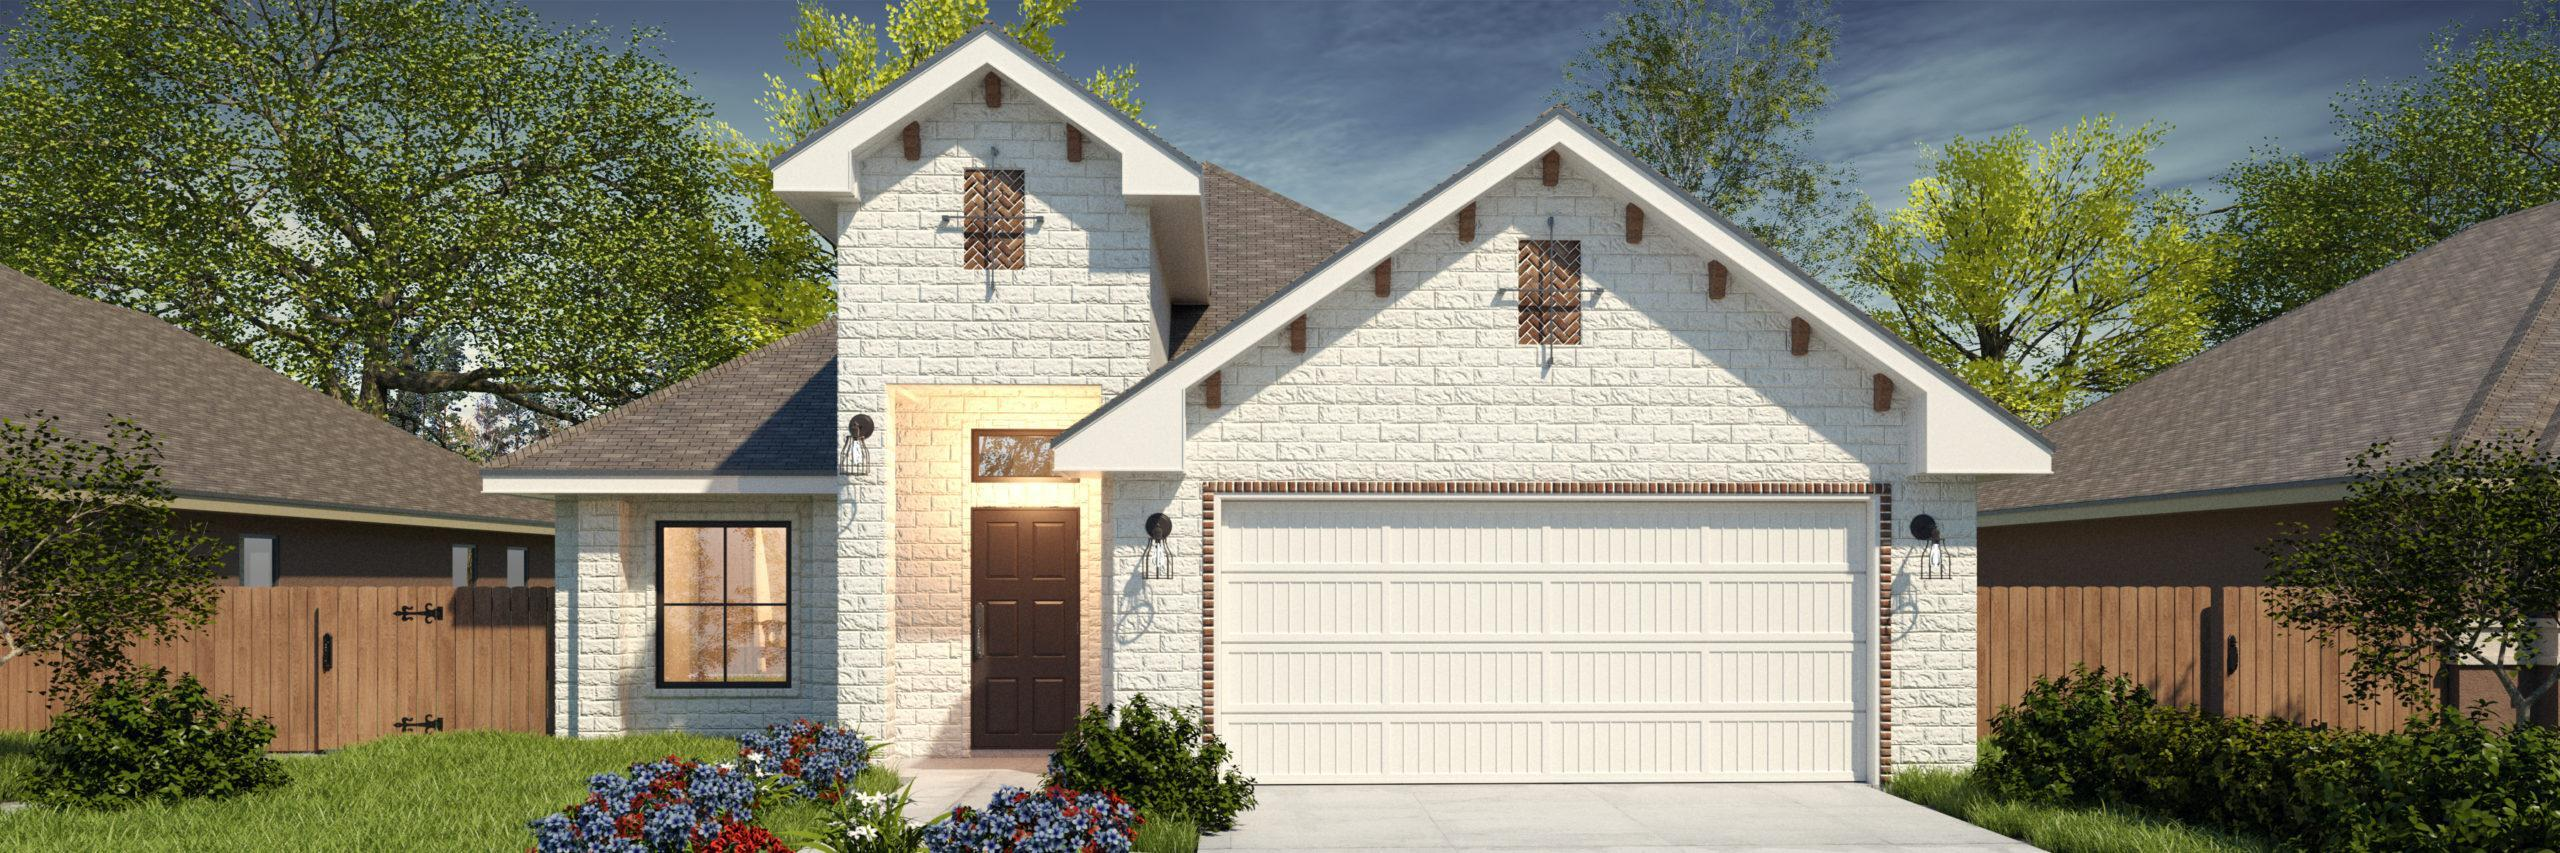 Exterior featured in the Santa Maria II By WestWind Homes in Rio Grande Valley, TX